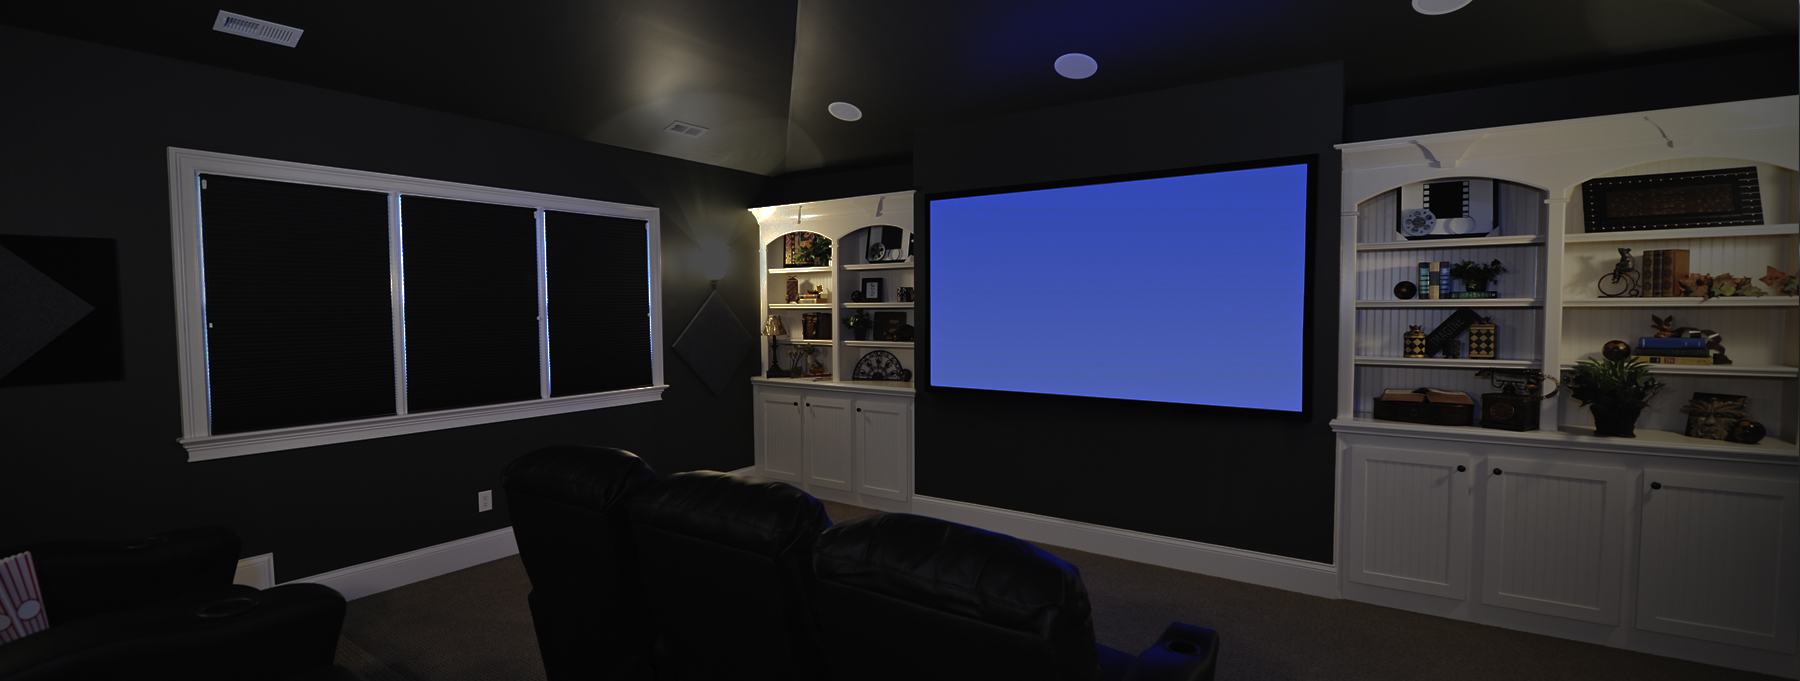 Home Theater Banner High End Home Entertainment